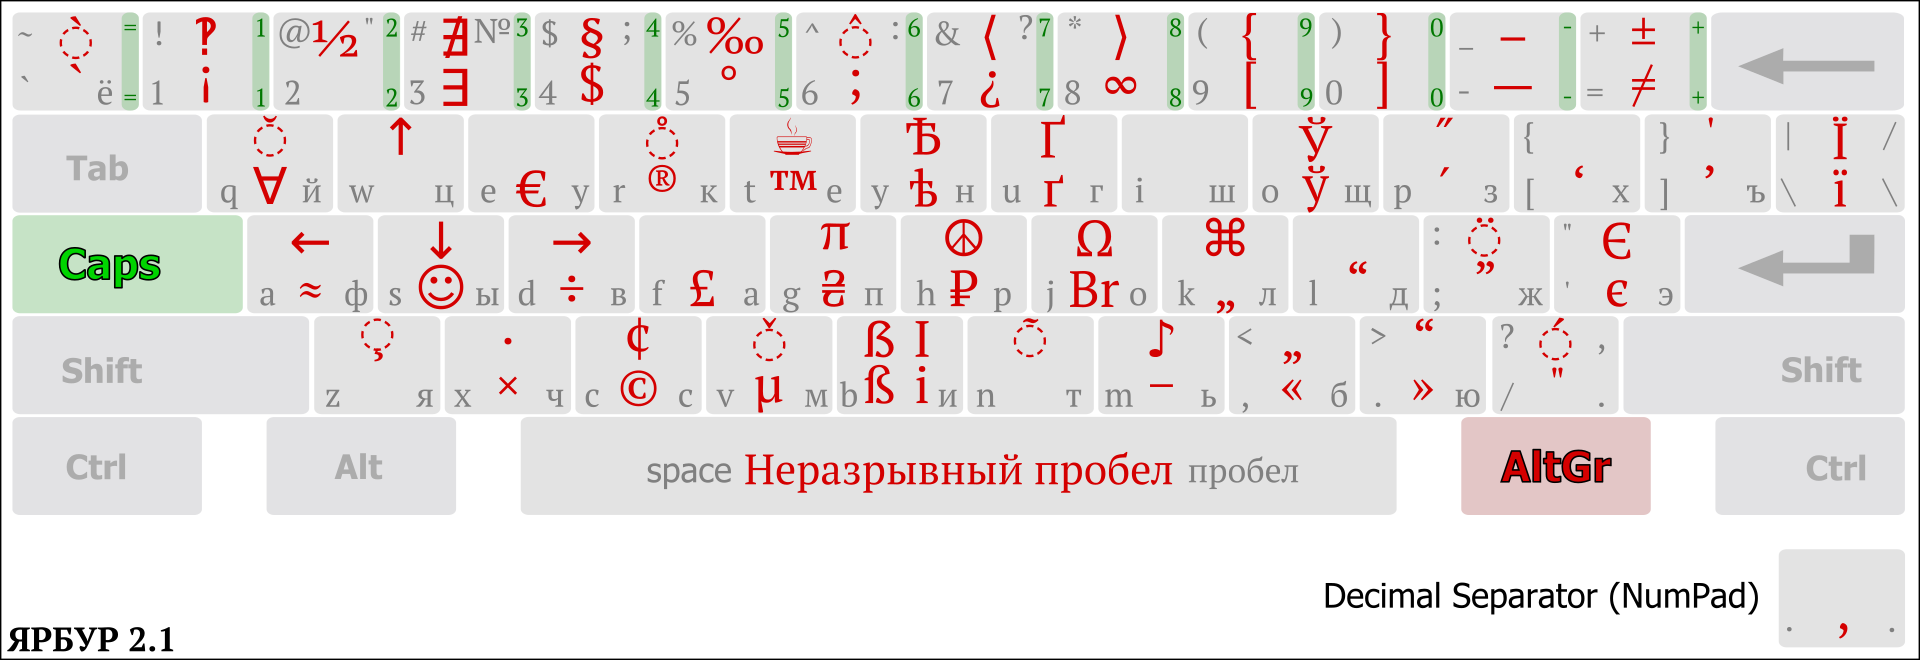 Windows altgr characters collide with ctrlalt hotkeys issue layout creator or use some popular typography layout so every key on keyboard can have that 3 layer and user can want to use or 3 layer or hotkeys biocorpaavc Choice Image